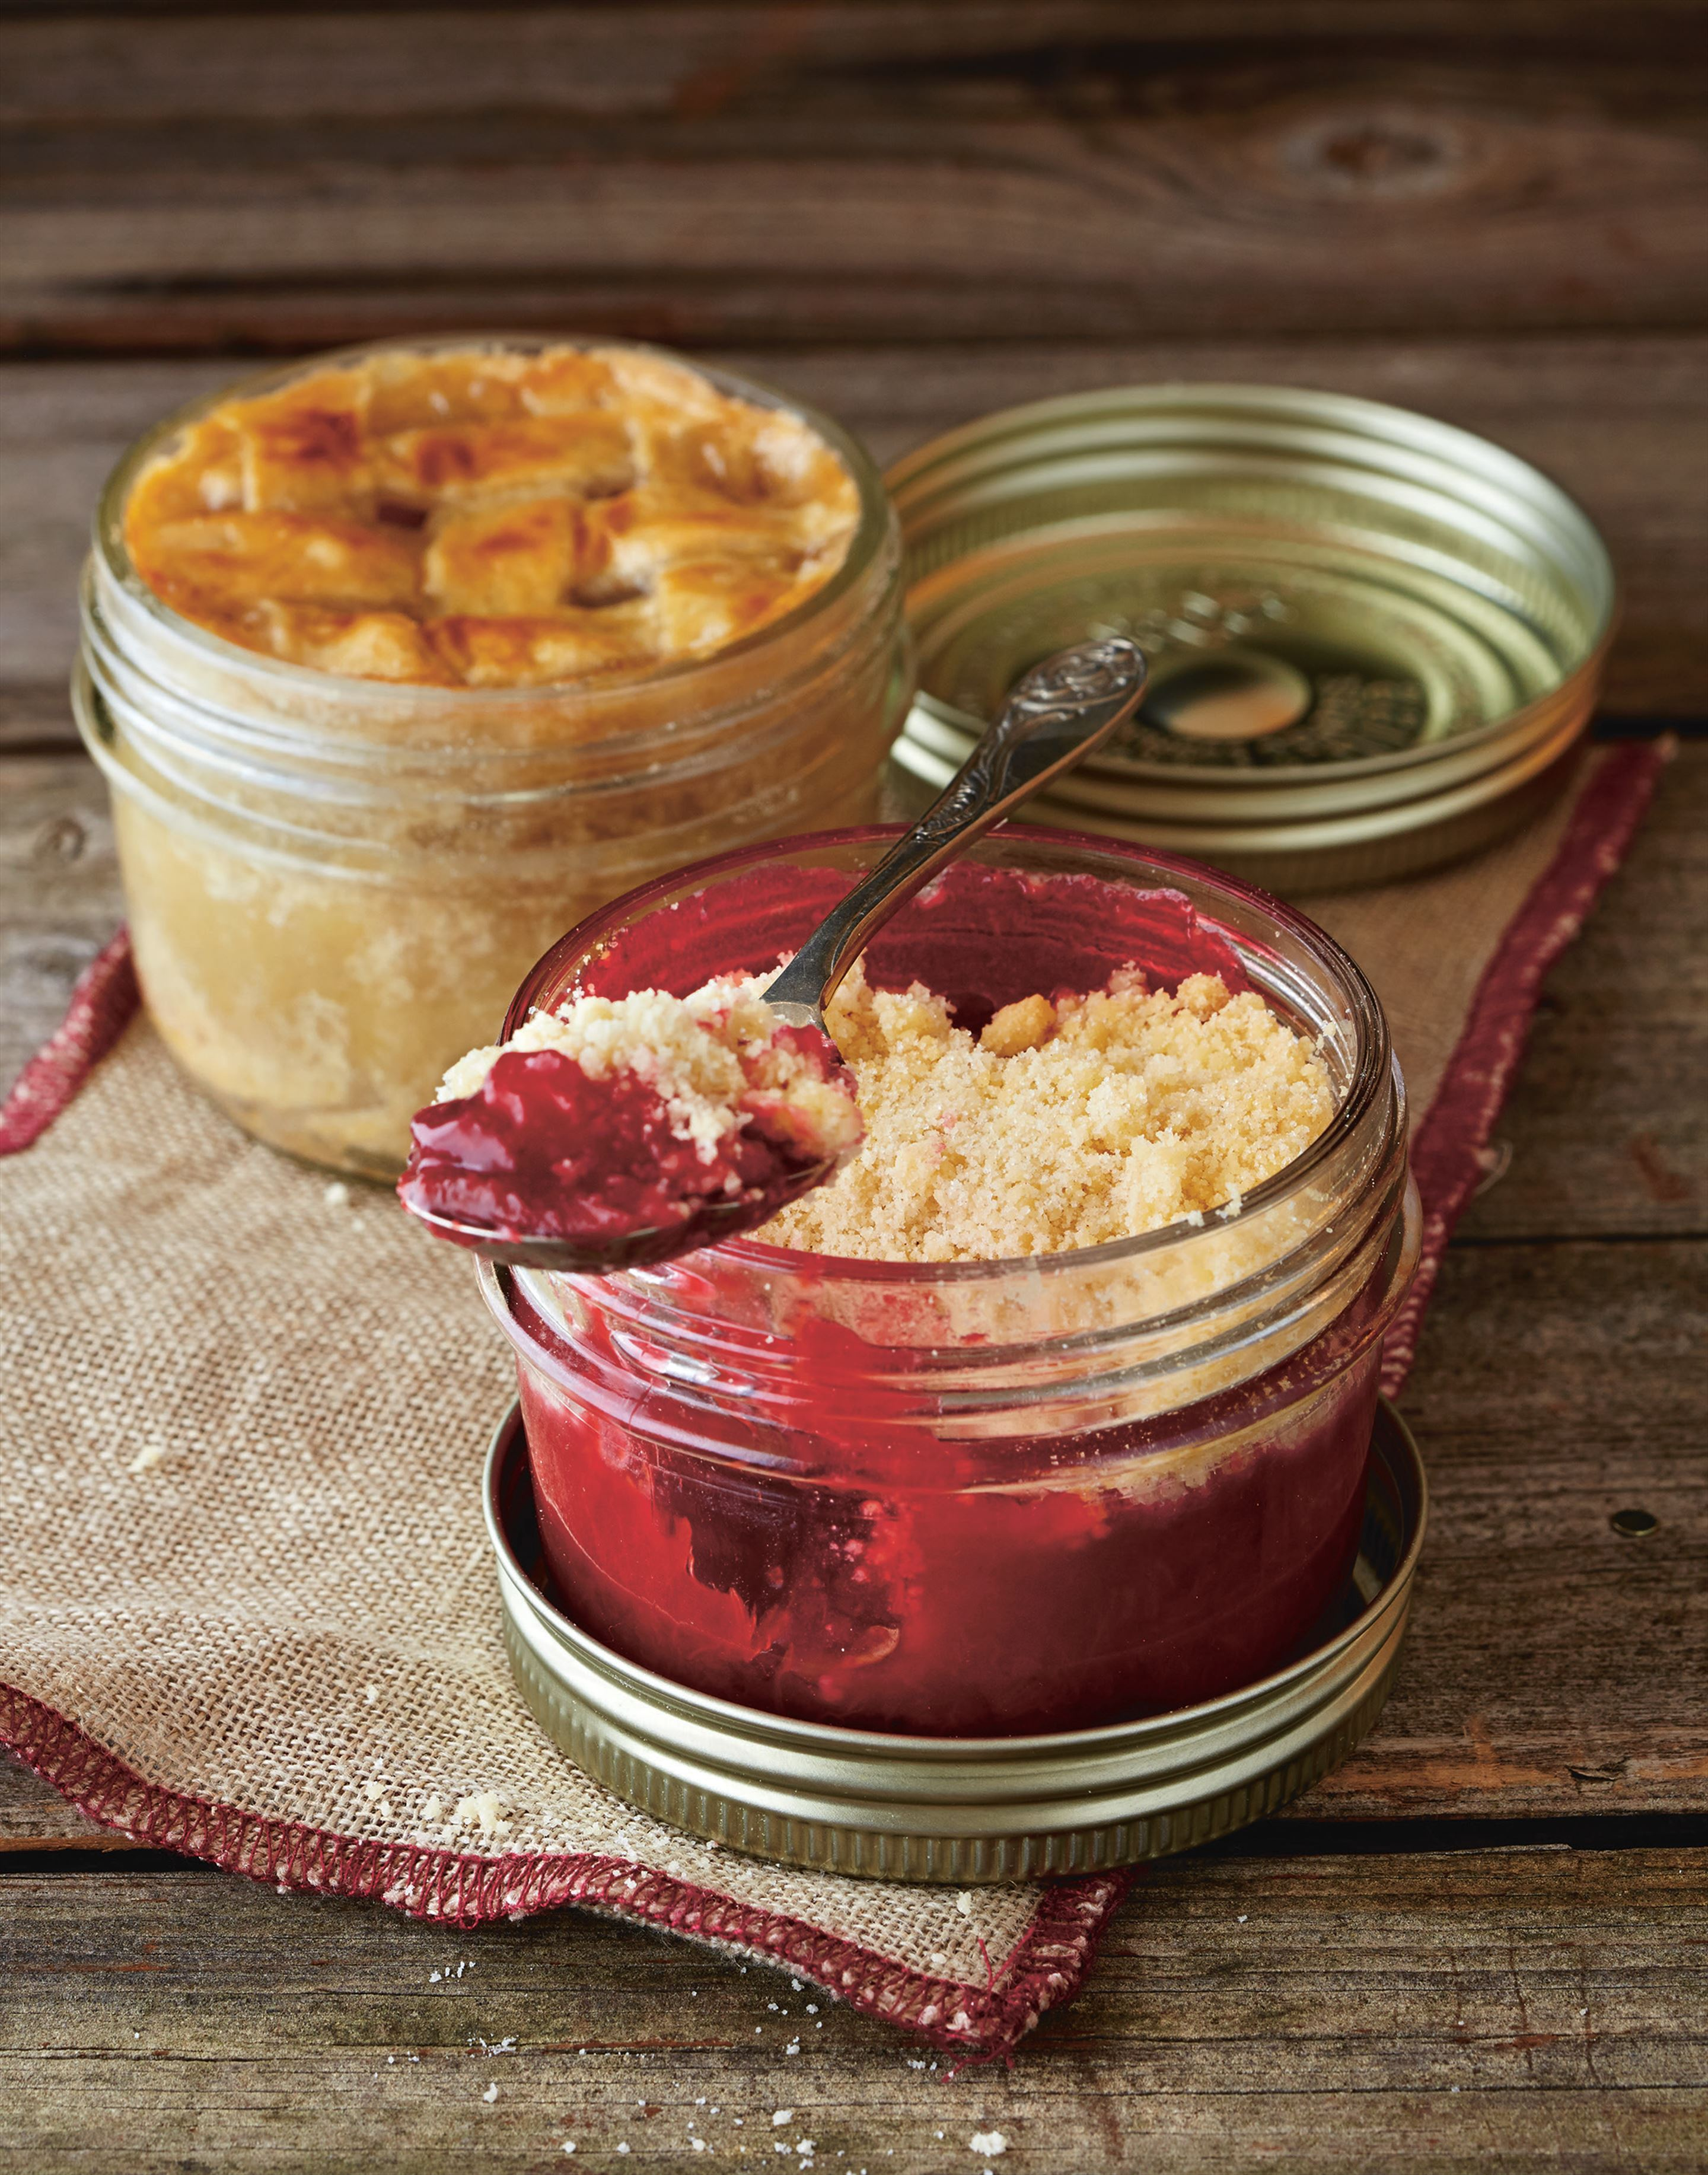 Plum crumble in a jar and apple pie in a jar